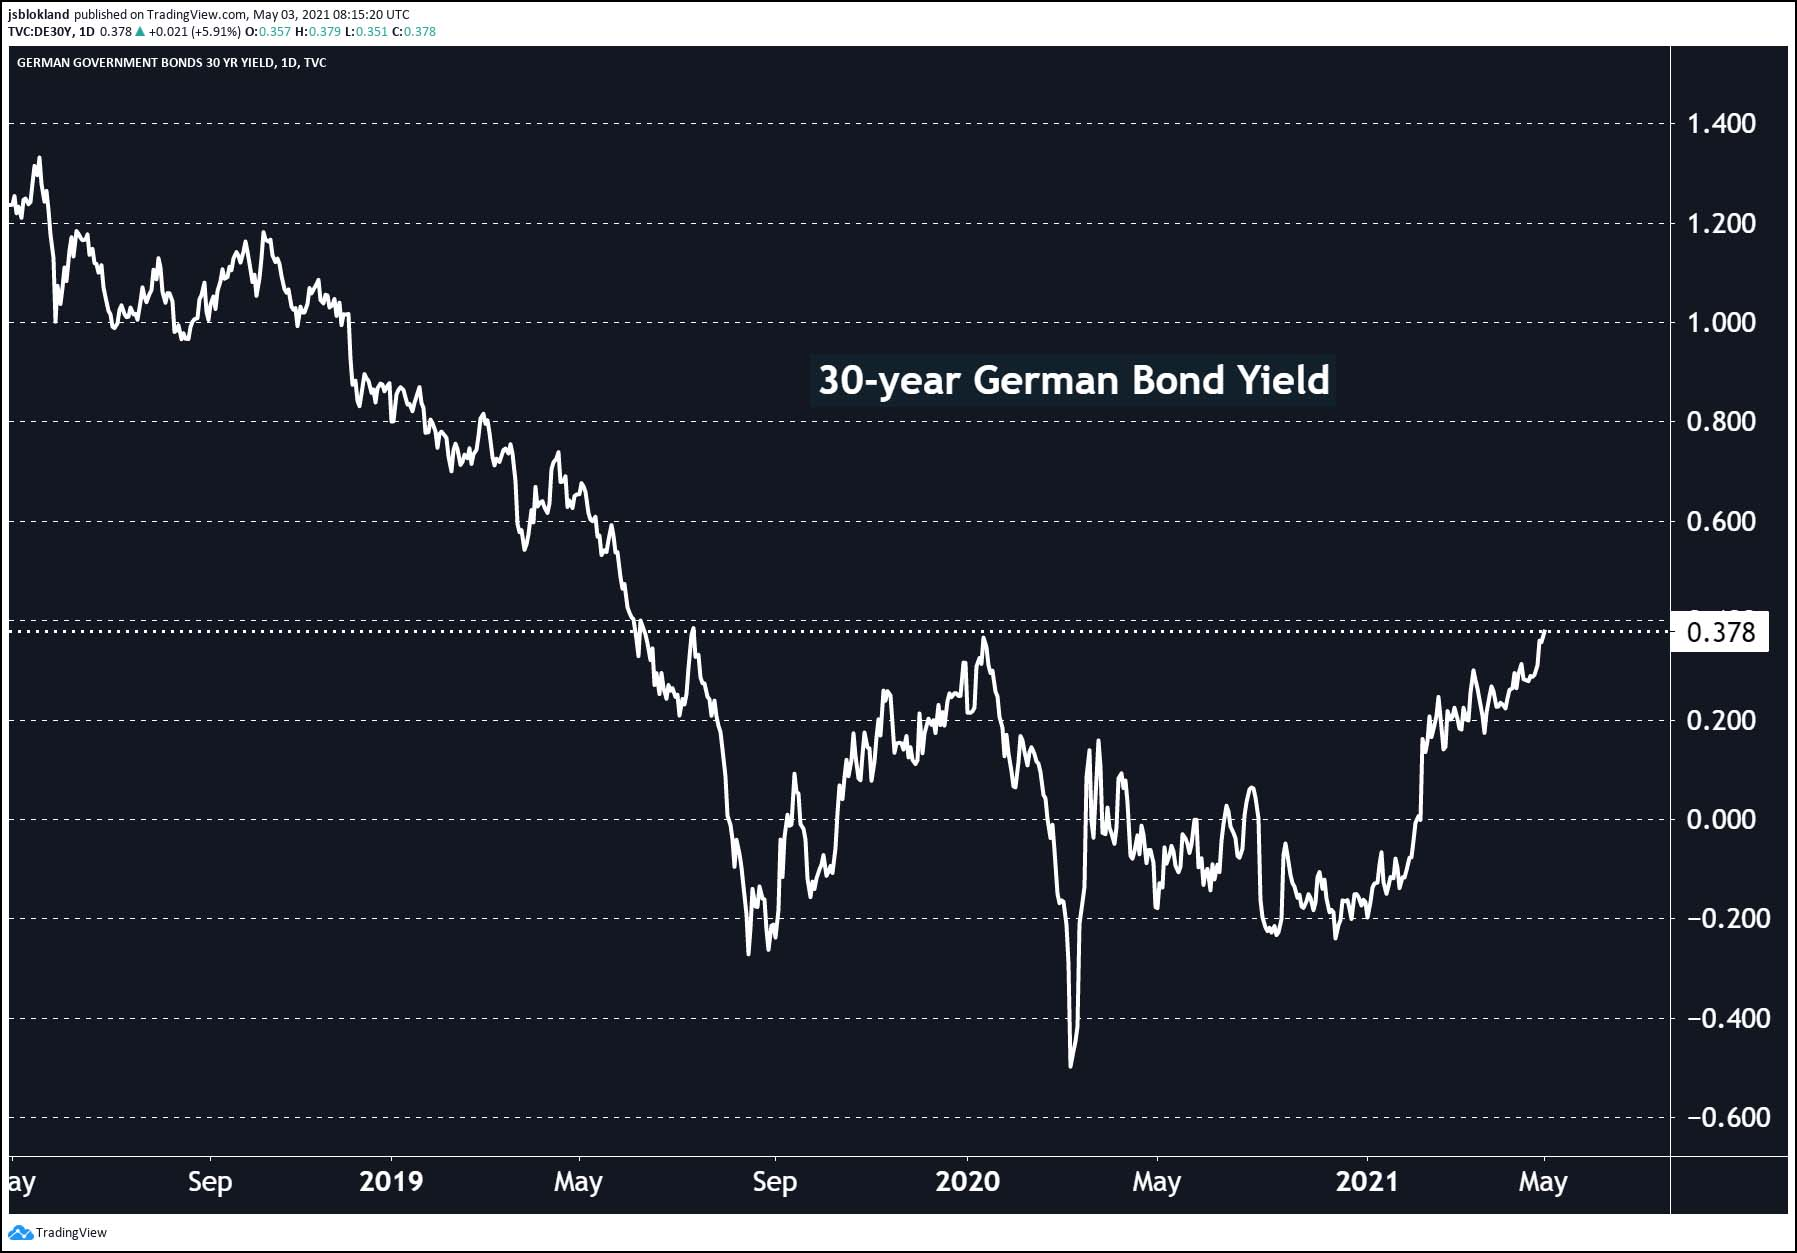 30-year German Bond Yield